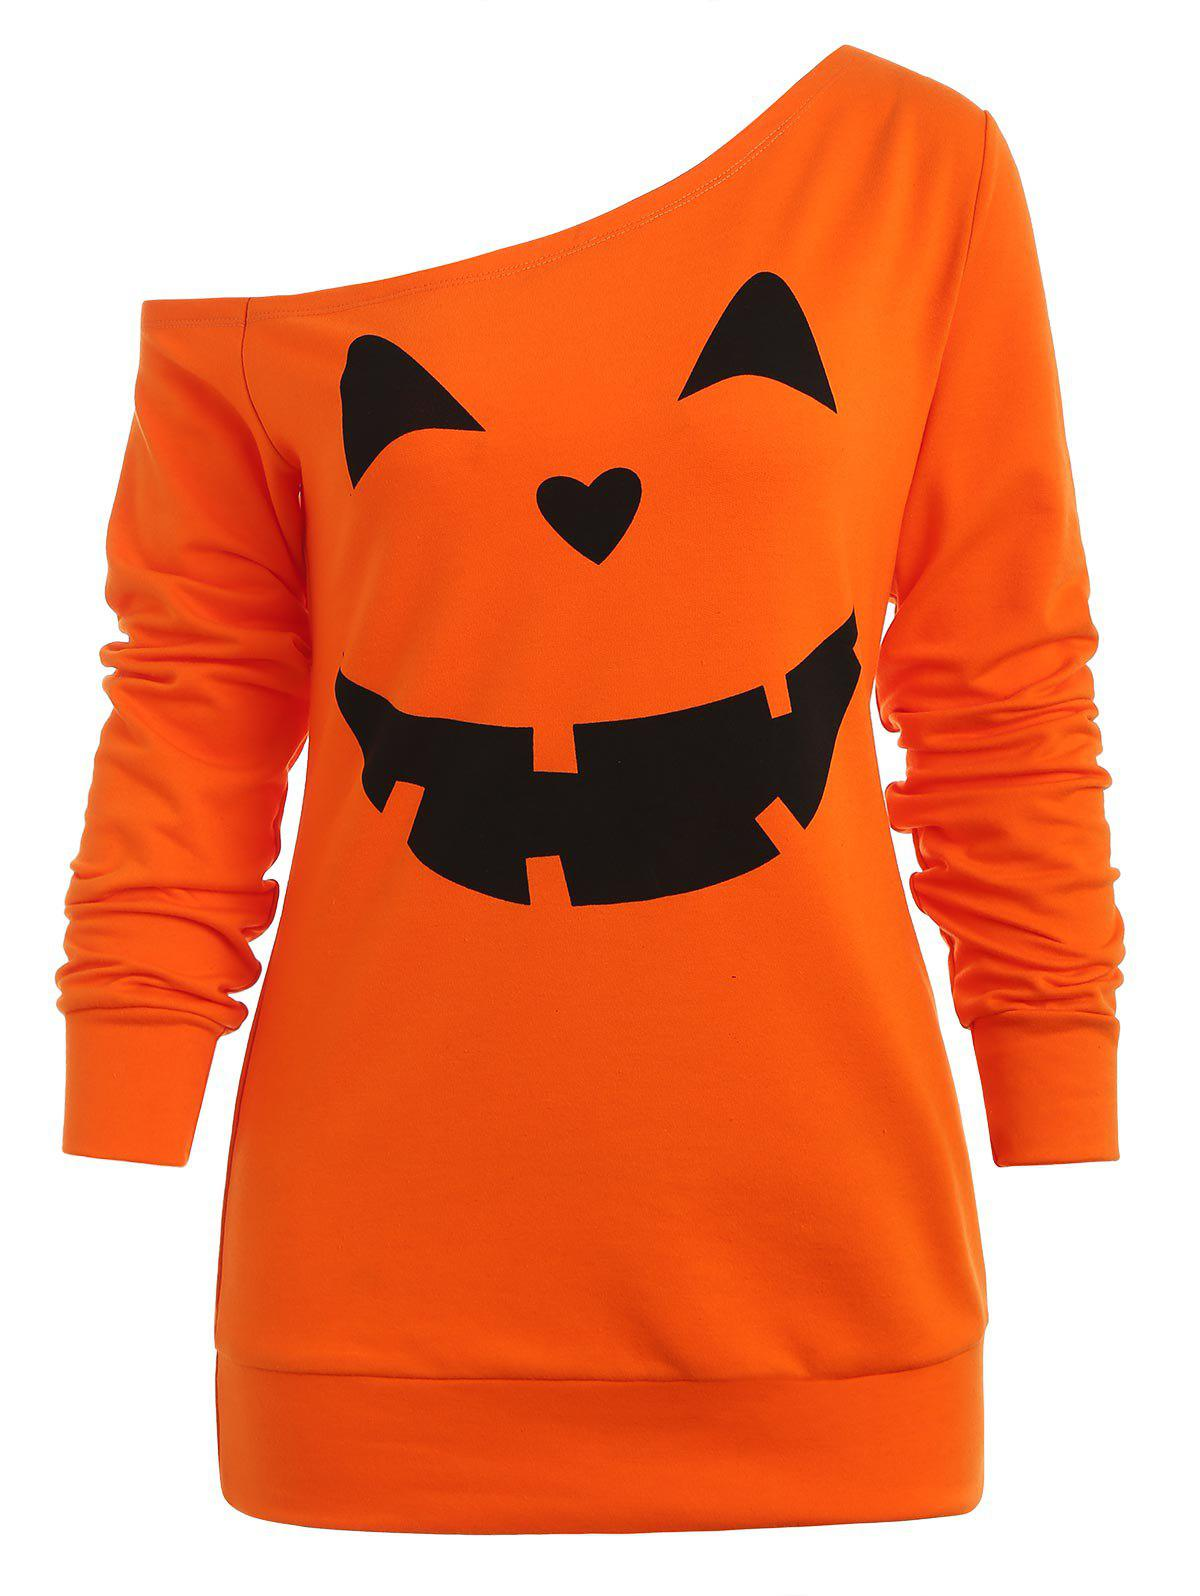 Sweat-shirt d'Halloween Citrouille Imprimé à Manches Raglan